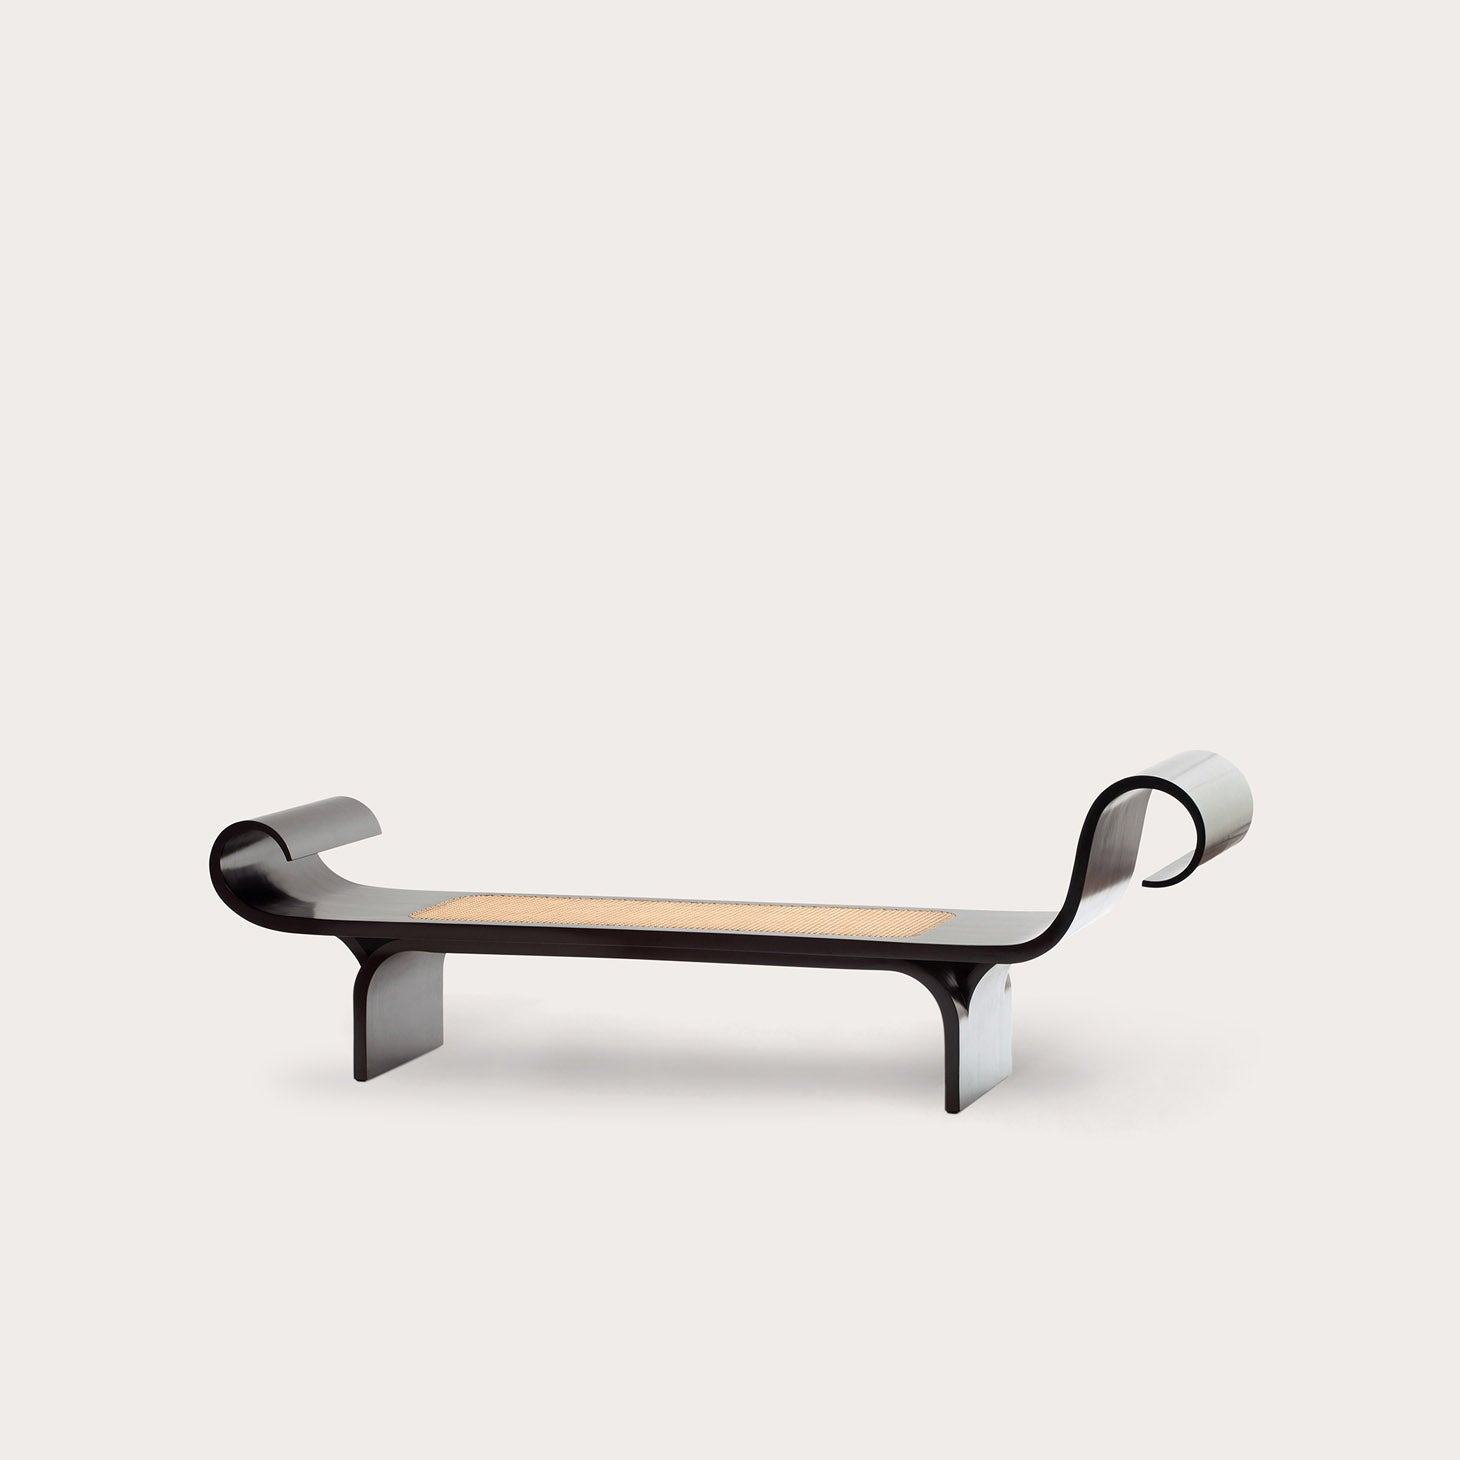 Marquesa Seating Oscar Niemeyer Designer Furniture Sku: 003-300-10001